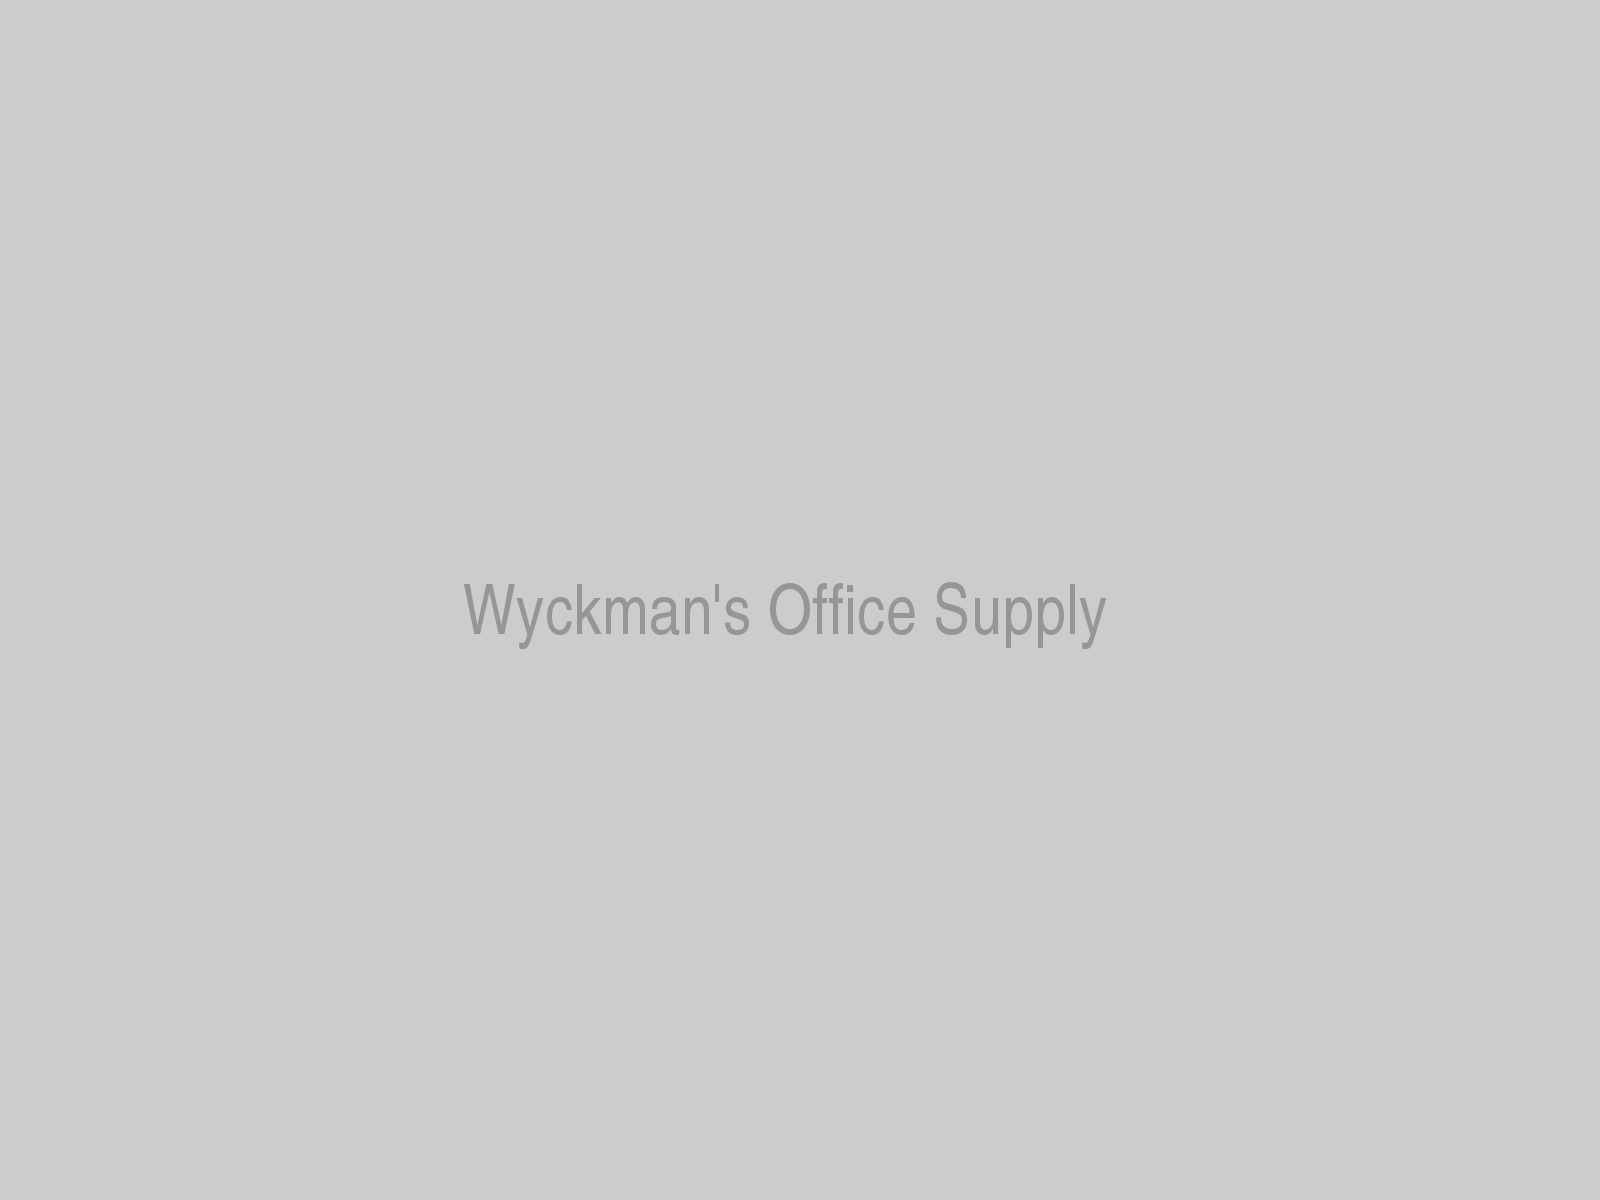 Wyckman's Office Supply